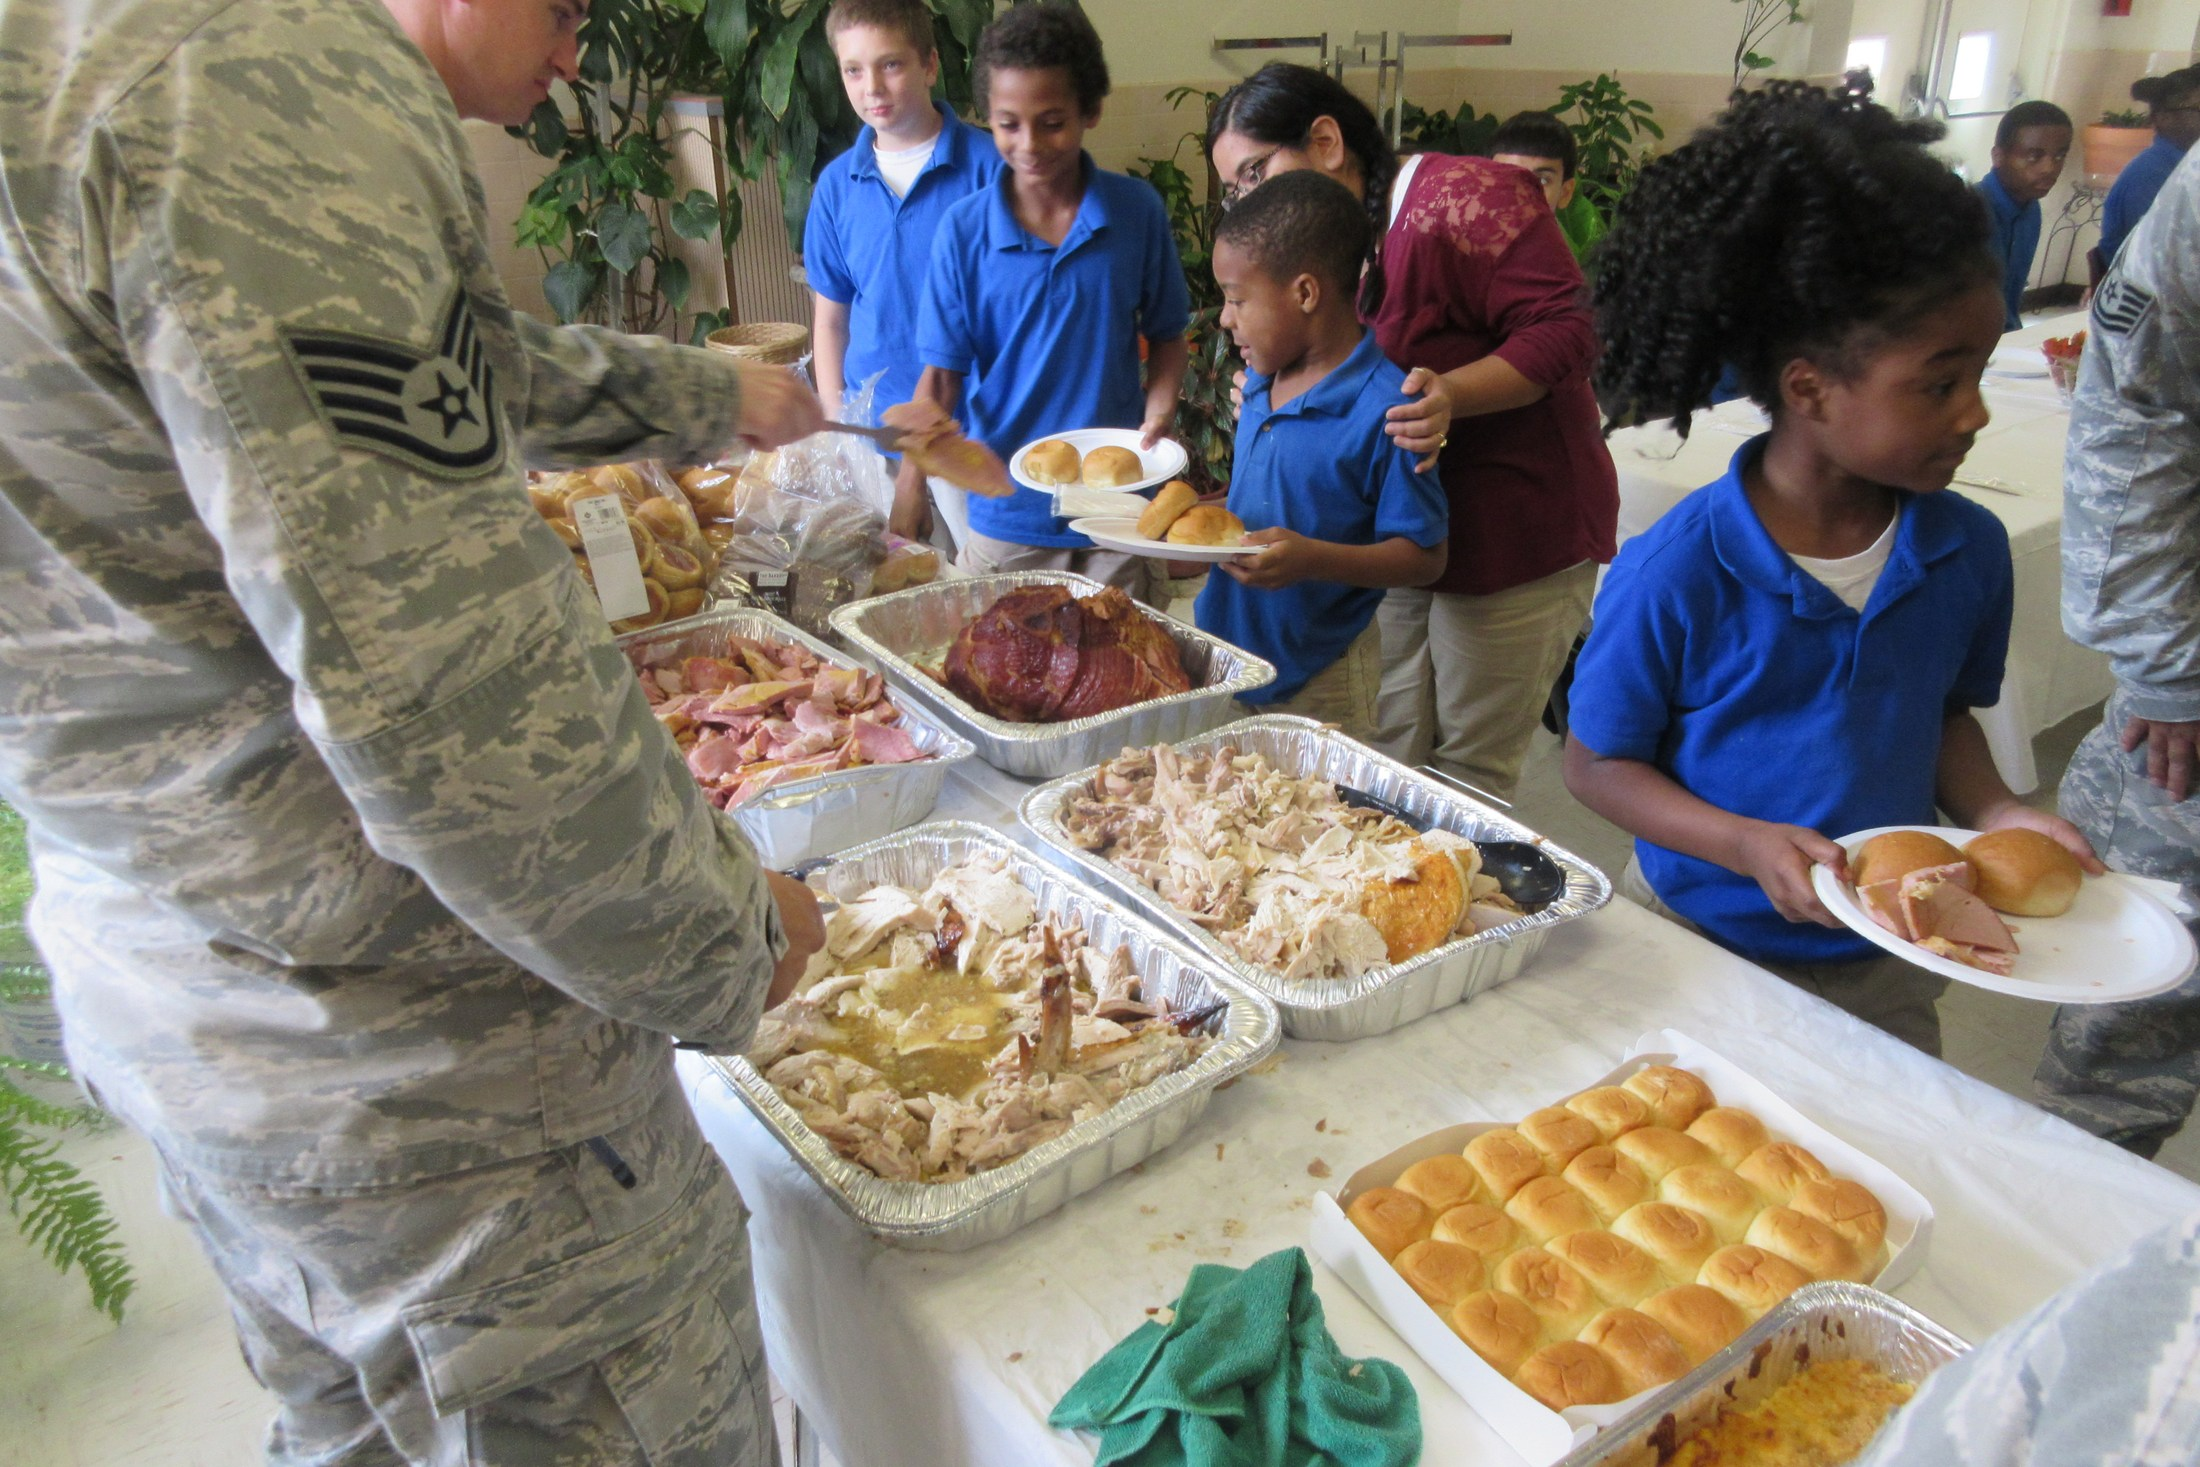 Airmen serving students